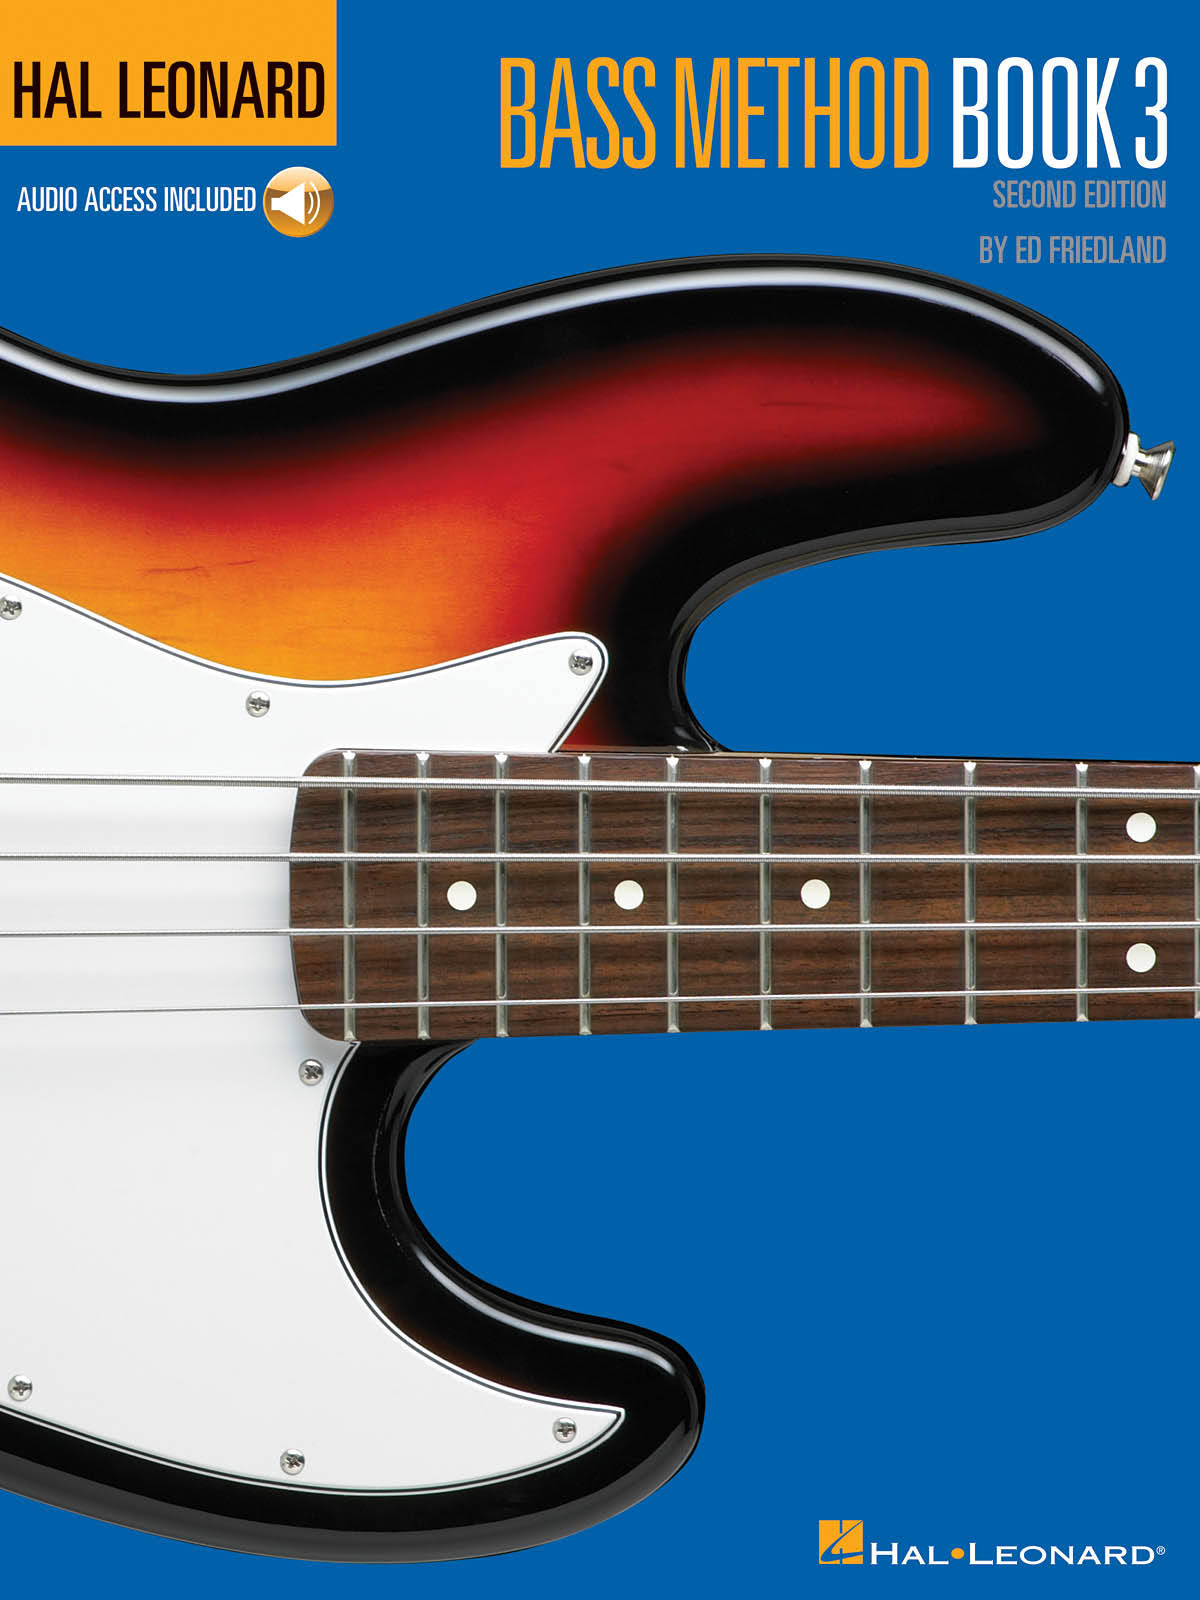 Hal Leonard Bass Method Book 3 - Hal Leonard